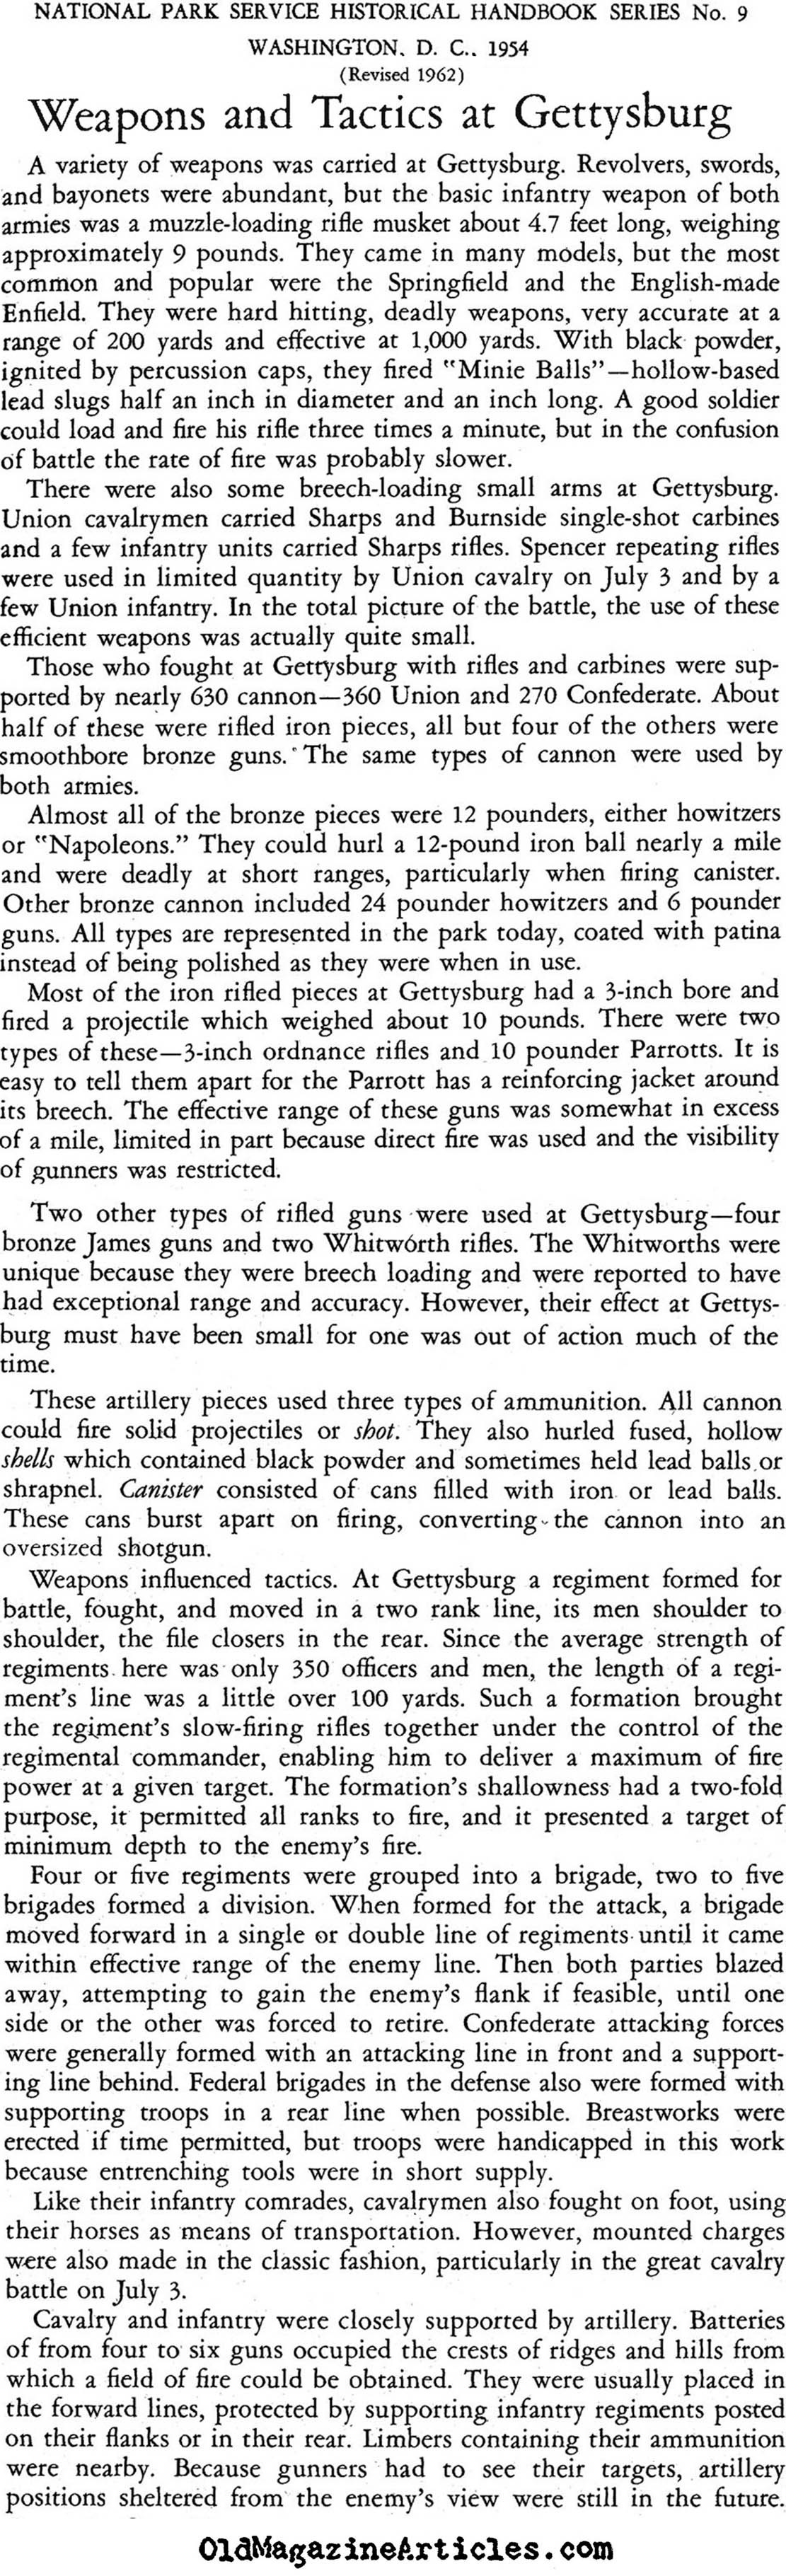 Weapons and Tactics at Gettysburg (National Park Service, 1954)